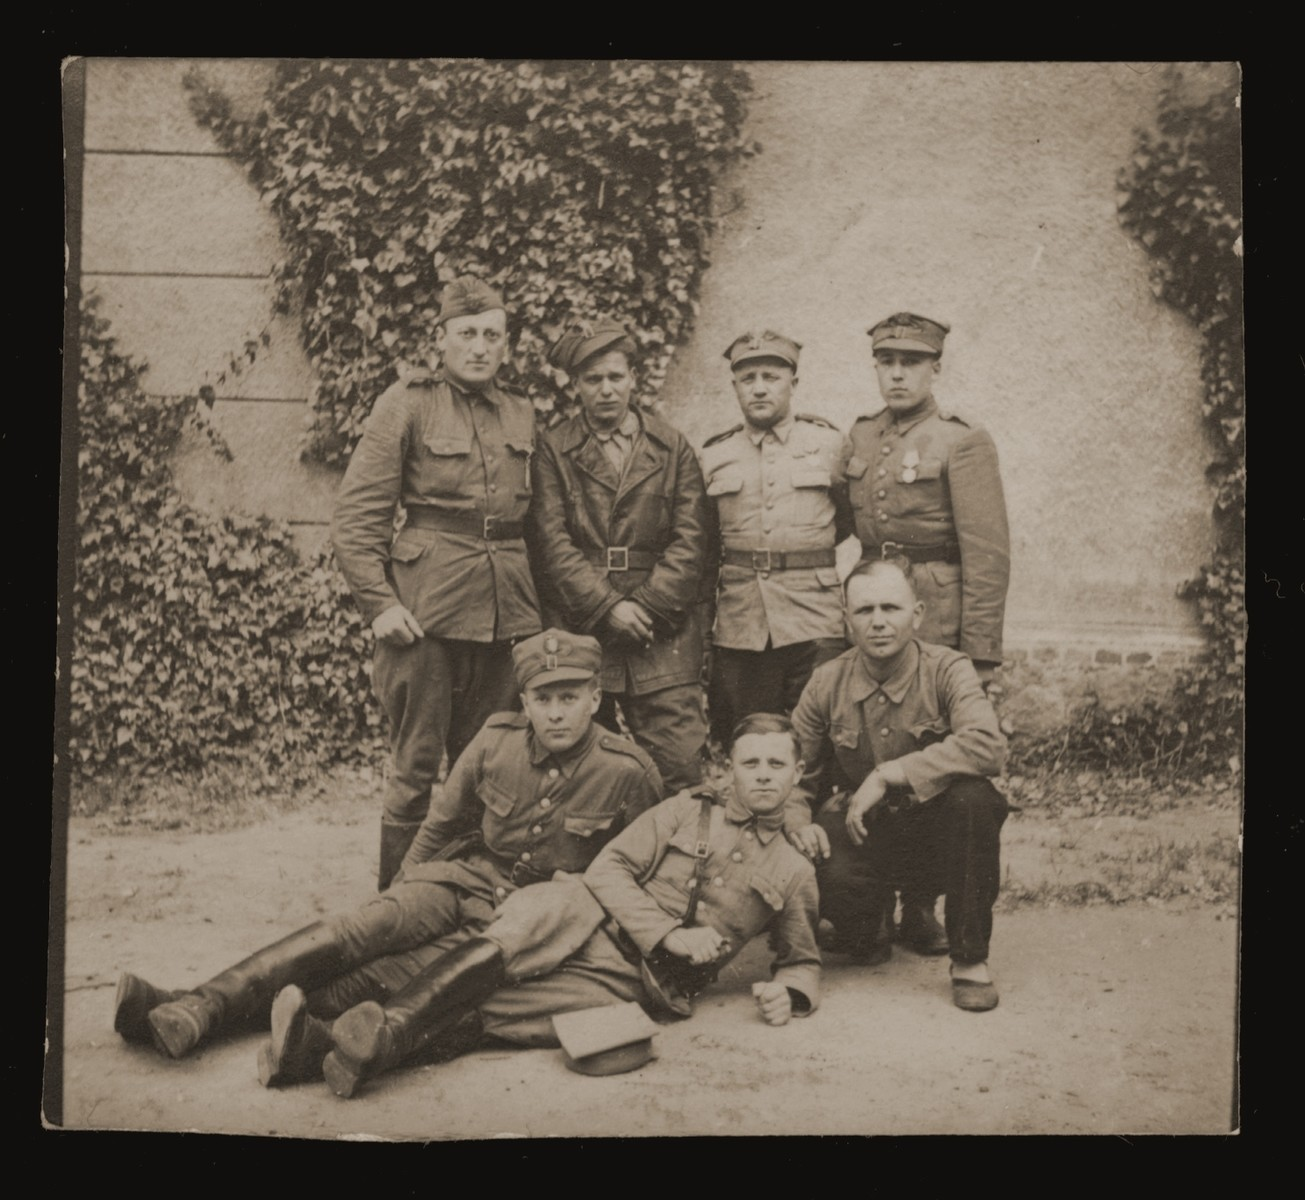 Zishe Malach, donor's father, standing first from left, during his military service in the Polish Army.